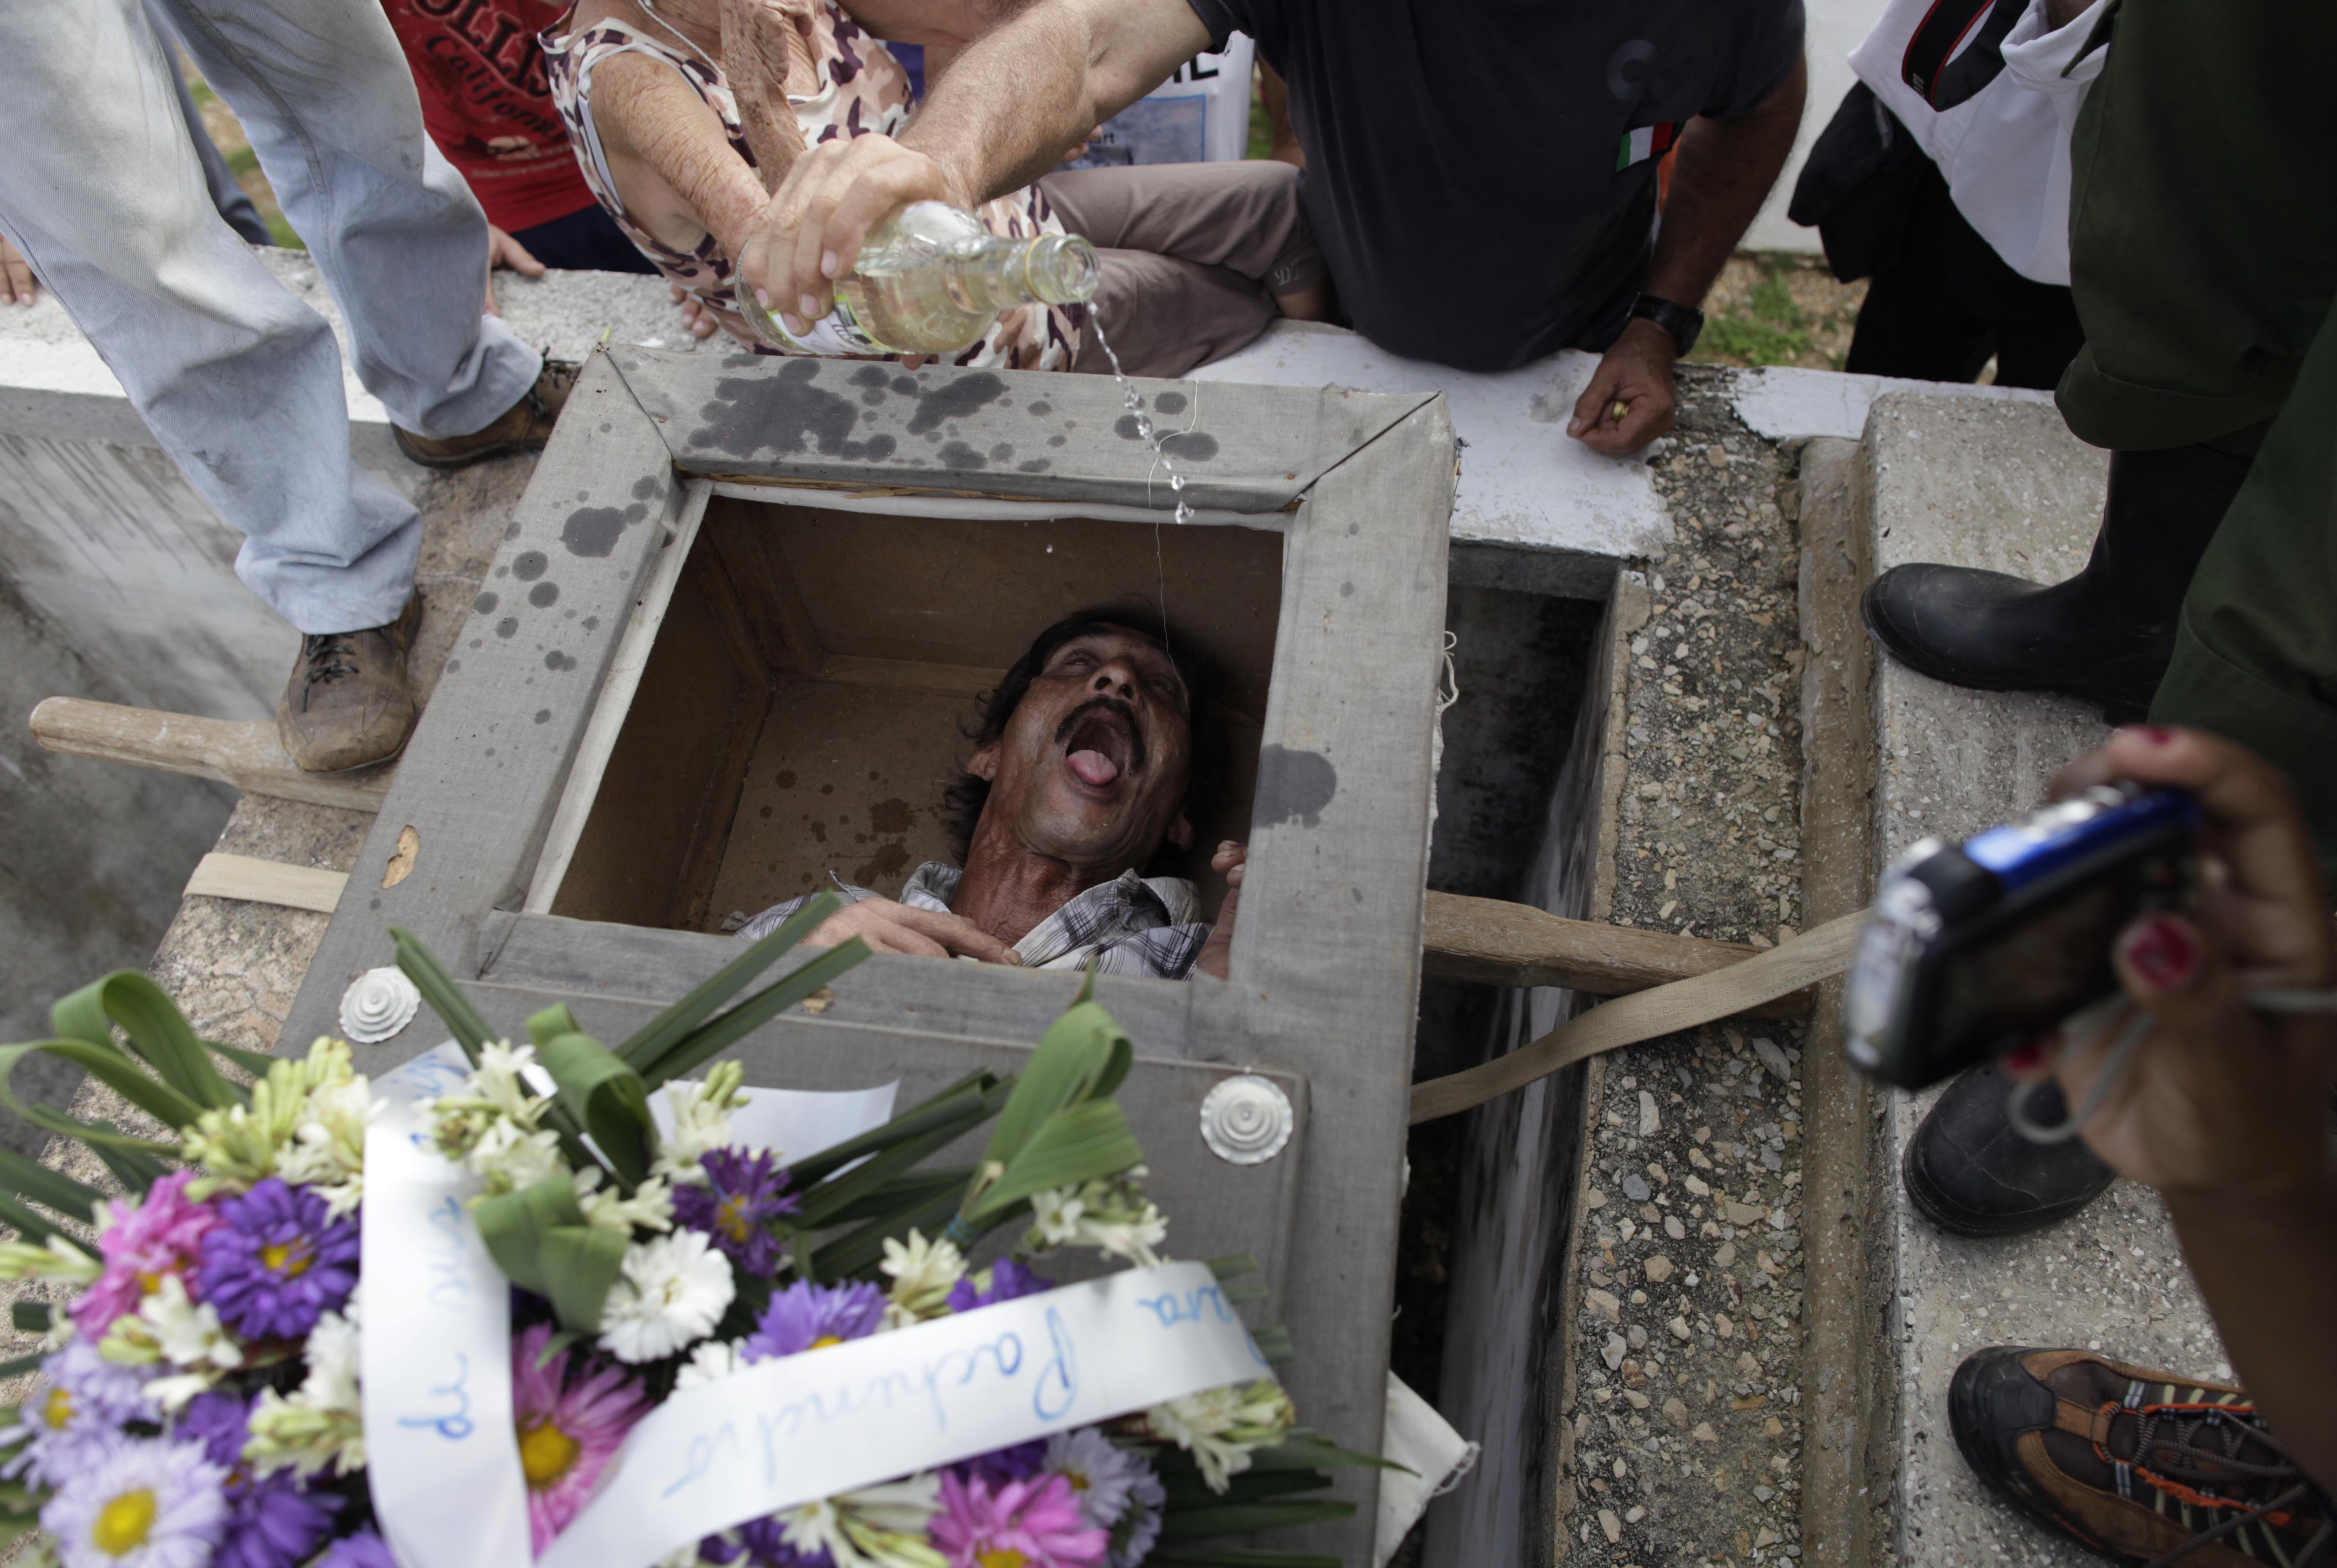 Divaldo Aguiar, who plays the part of Pachencho, lies inside a mock coffin as villagers splash rum into Aguiar's mouth during the Burial of Pachencho celebration at a cemetery in Santiago de Las Vegas, Cuba, Feb. 5.